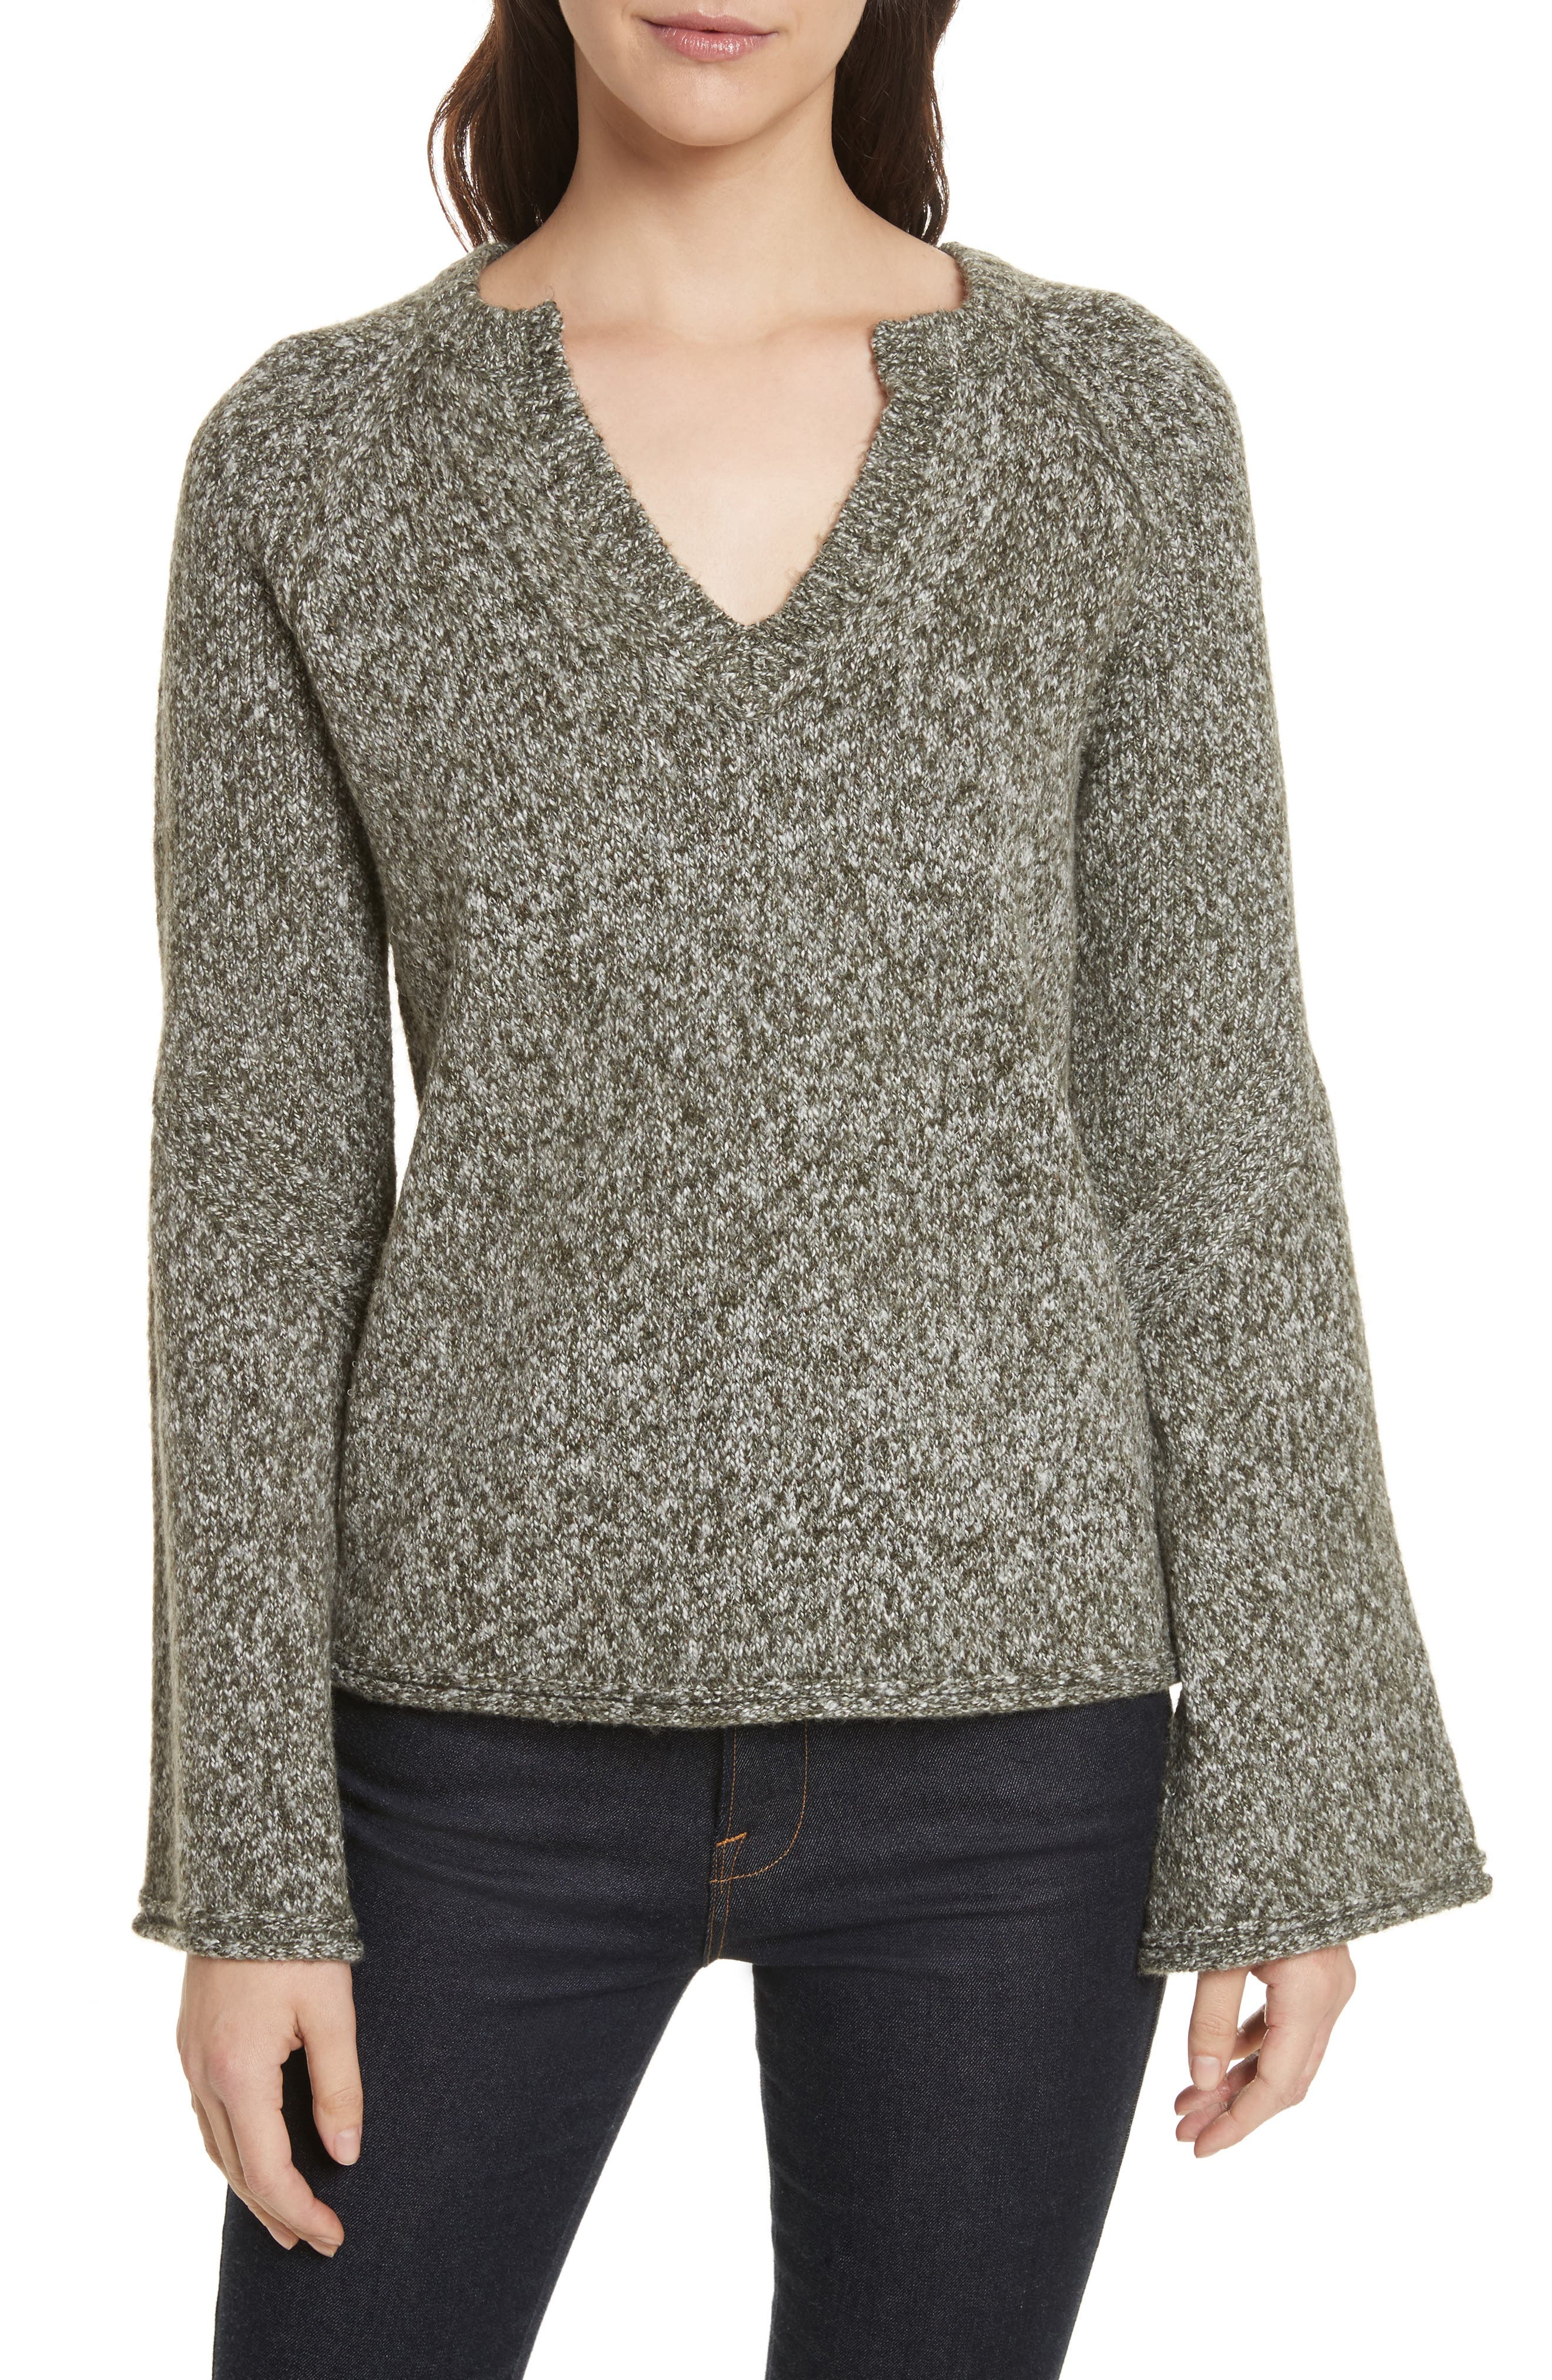 Griffyn Sweater,                         Main,                         color, Military Olive Multi